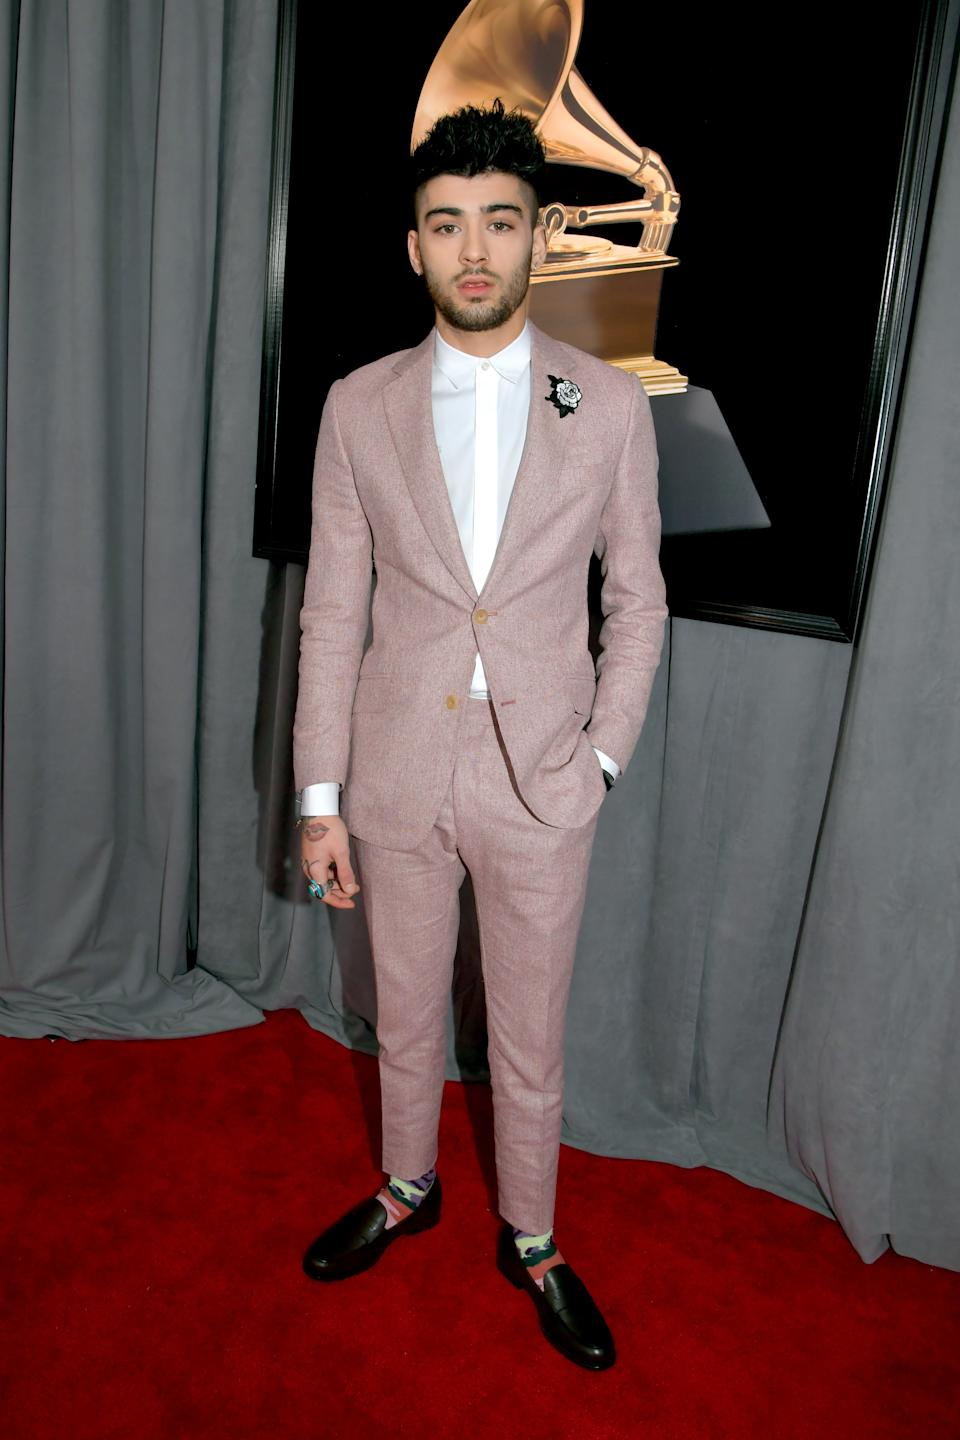 Zayn Malik had also criticised the Grammy Awards and its processes. (Photo by Lester Cohen/Getty Images for NARAS)